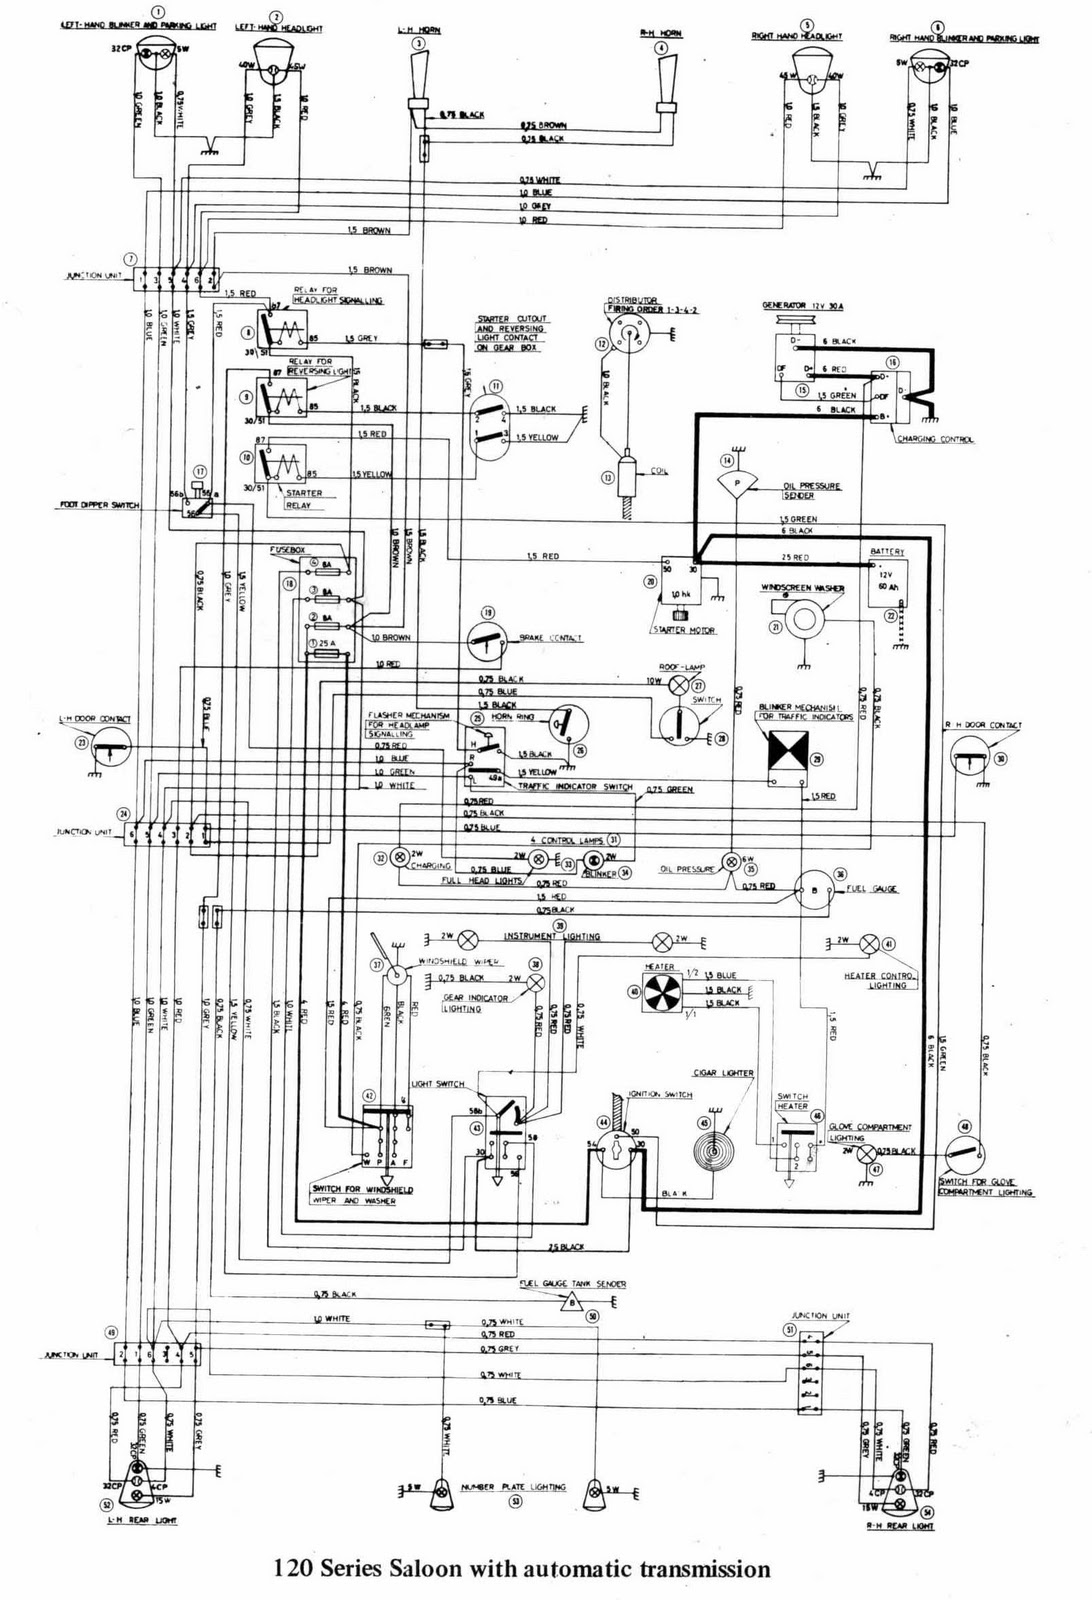 medium resolution of volvo truck wiring diagrams wiring diagram blogs semi truck radio wiring harness 1996 volvo semi truck wiring diagram